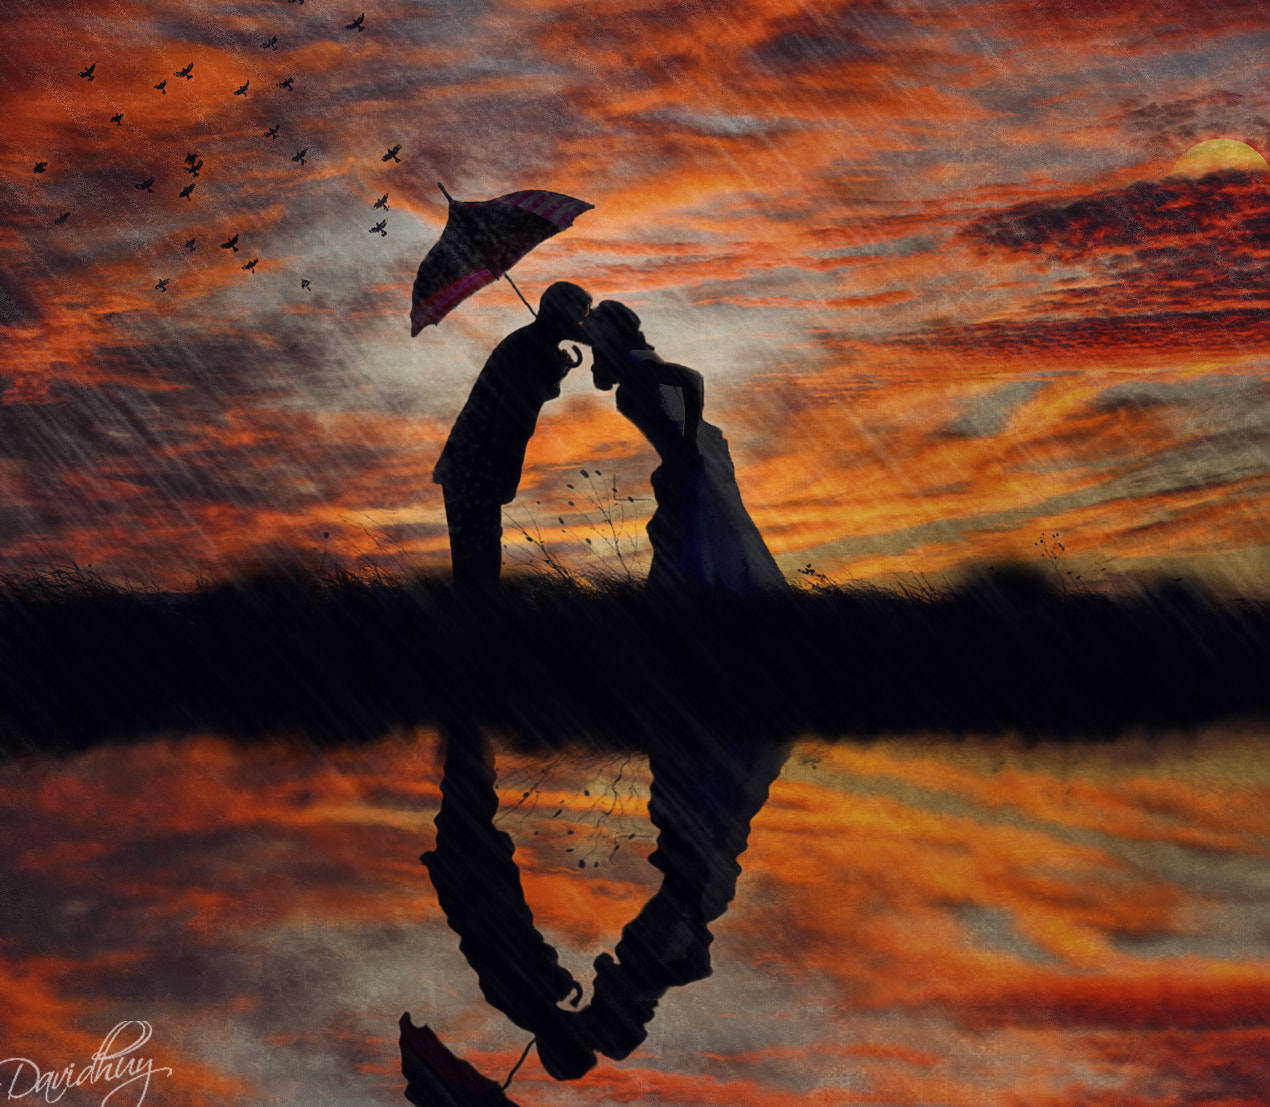 Photograph Kissing in the rain by David Huy on 500px